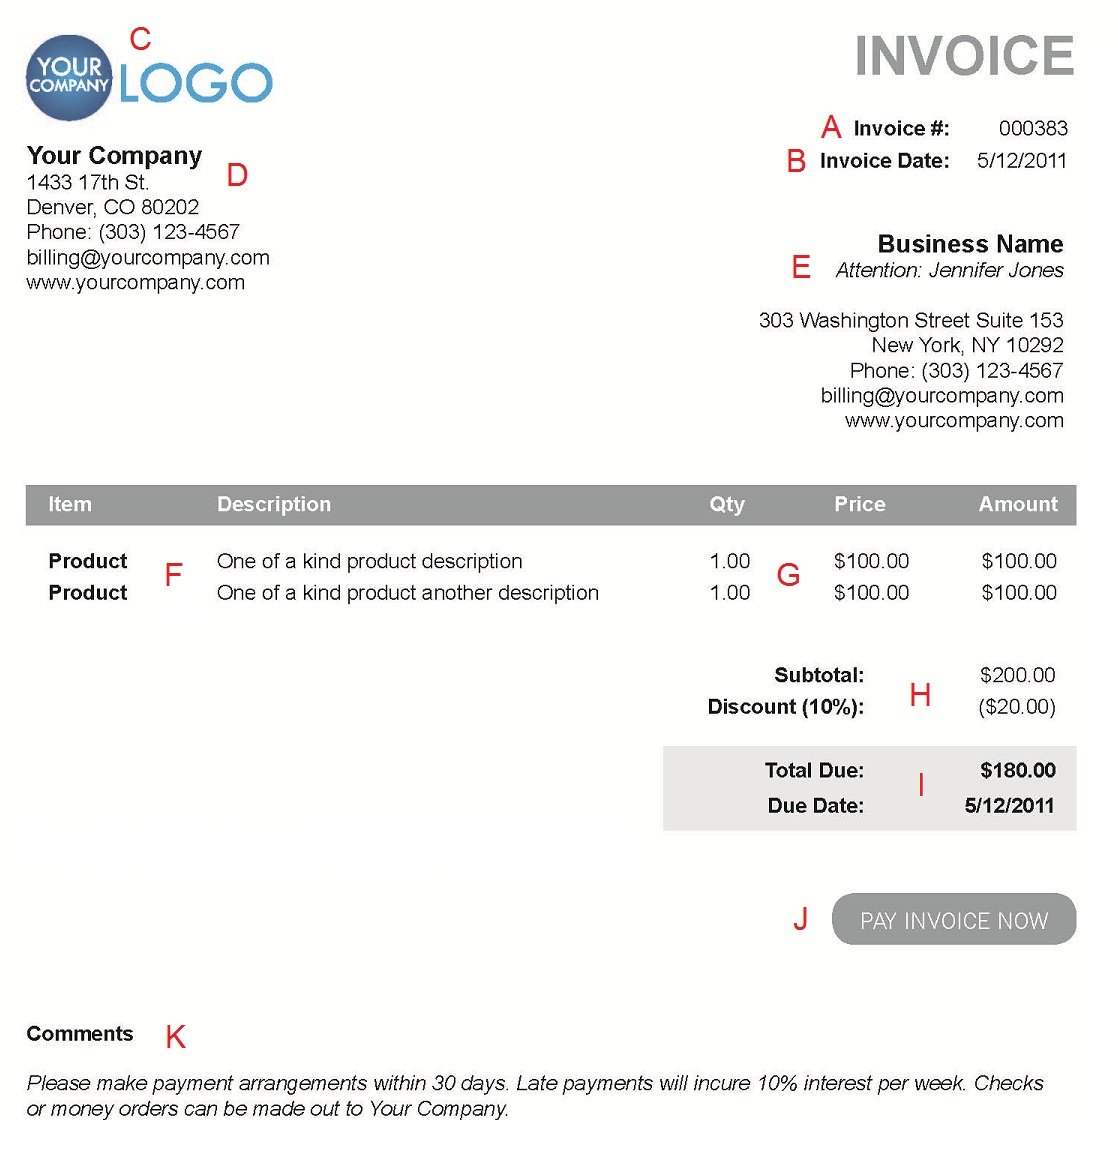 Ultrablogus  Ravishing The  Different Sections Of An Electronic Payment Invoice With Inspiring A  With Awesome Nm Gross Receipts Tax Also Costco Return Policy Without Receipt In Addition Receipt Com And Delta Receipt As Well As Scan Receipts App Additionally Party City Return Policy Without Receipt From Paysimplecom With Ultrablogus  Inspiring The  Different Sections Of An Electronic Payment Invoice With Awesome A  And Ravishing Nm Gross Receipts Tax Also Costco Return Policy Without Receipt In Addition Receipt Com From Paysimplecom